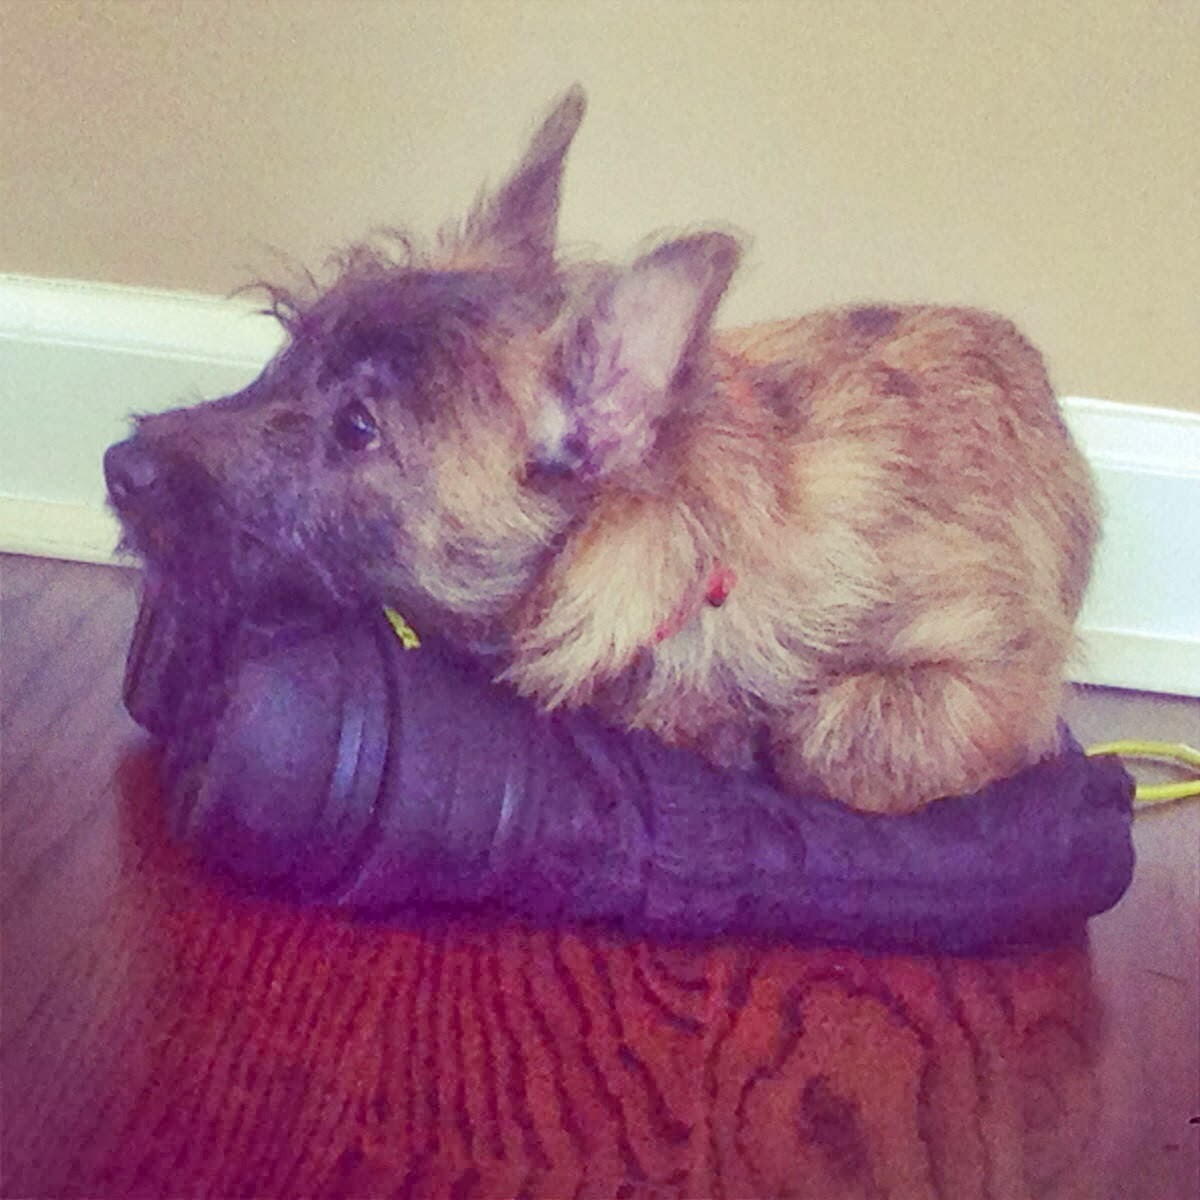 Cute dogs - part 7 (50 pics), tiny dog lays on the shoe